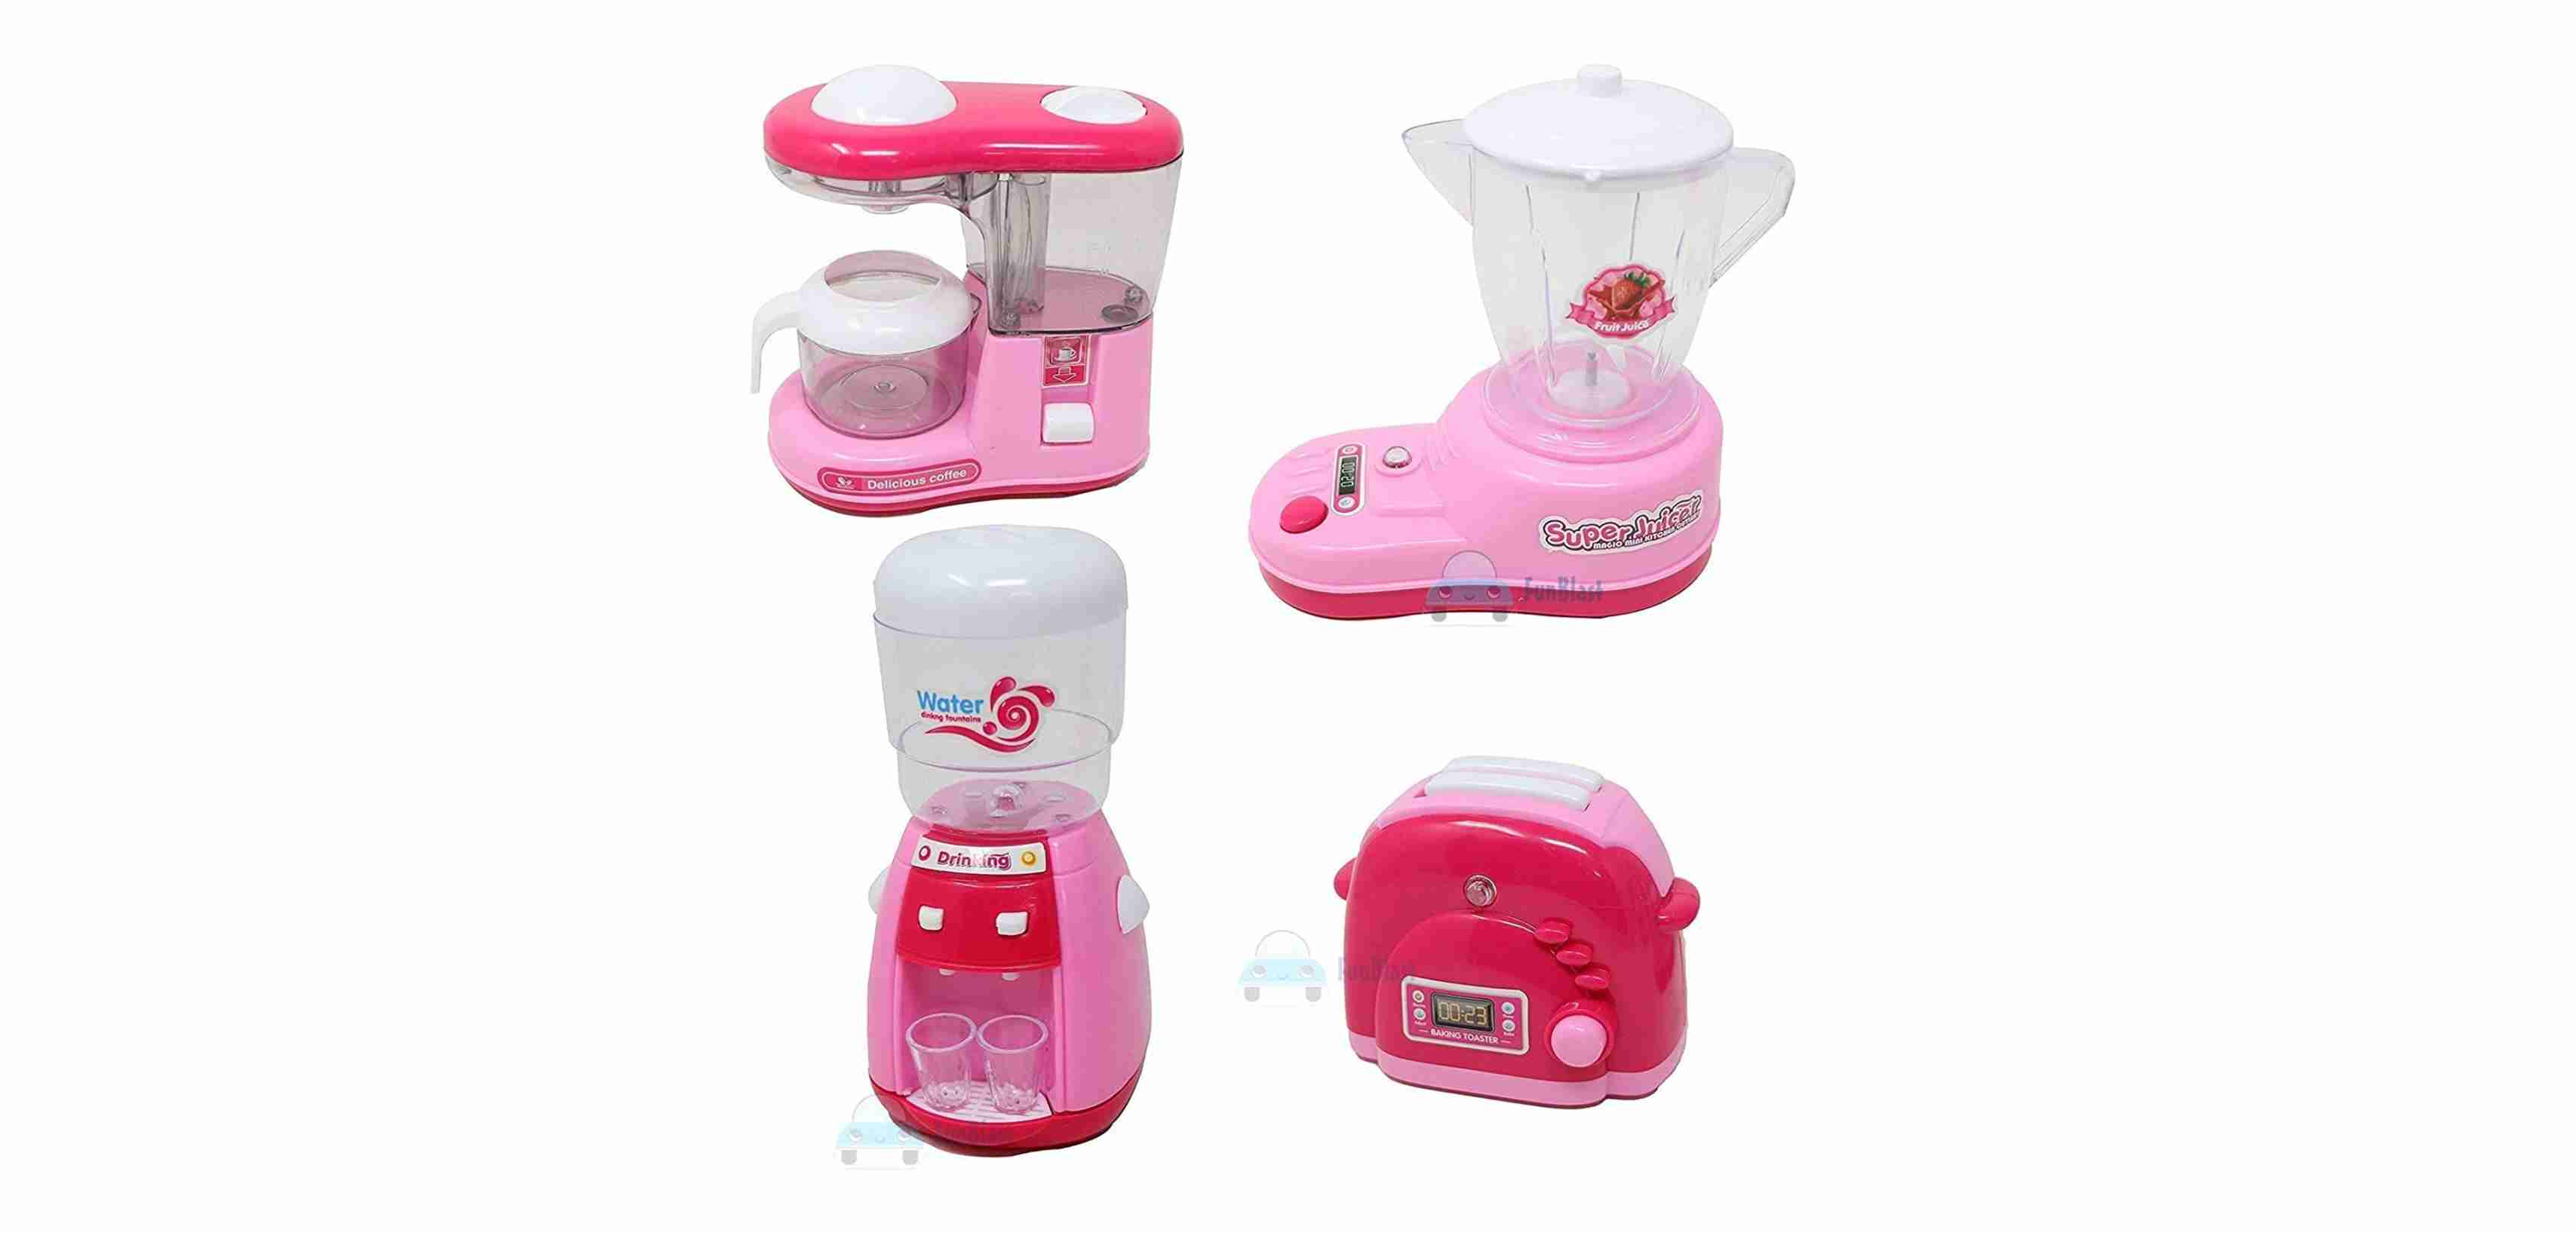 Household Kitchen Set for Girls